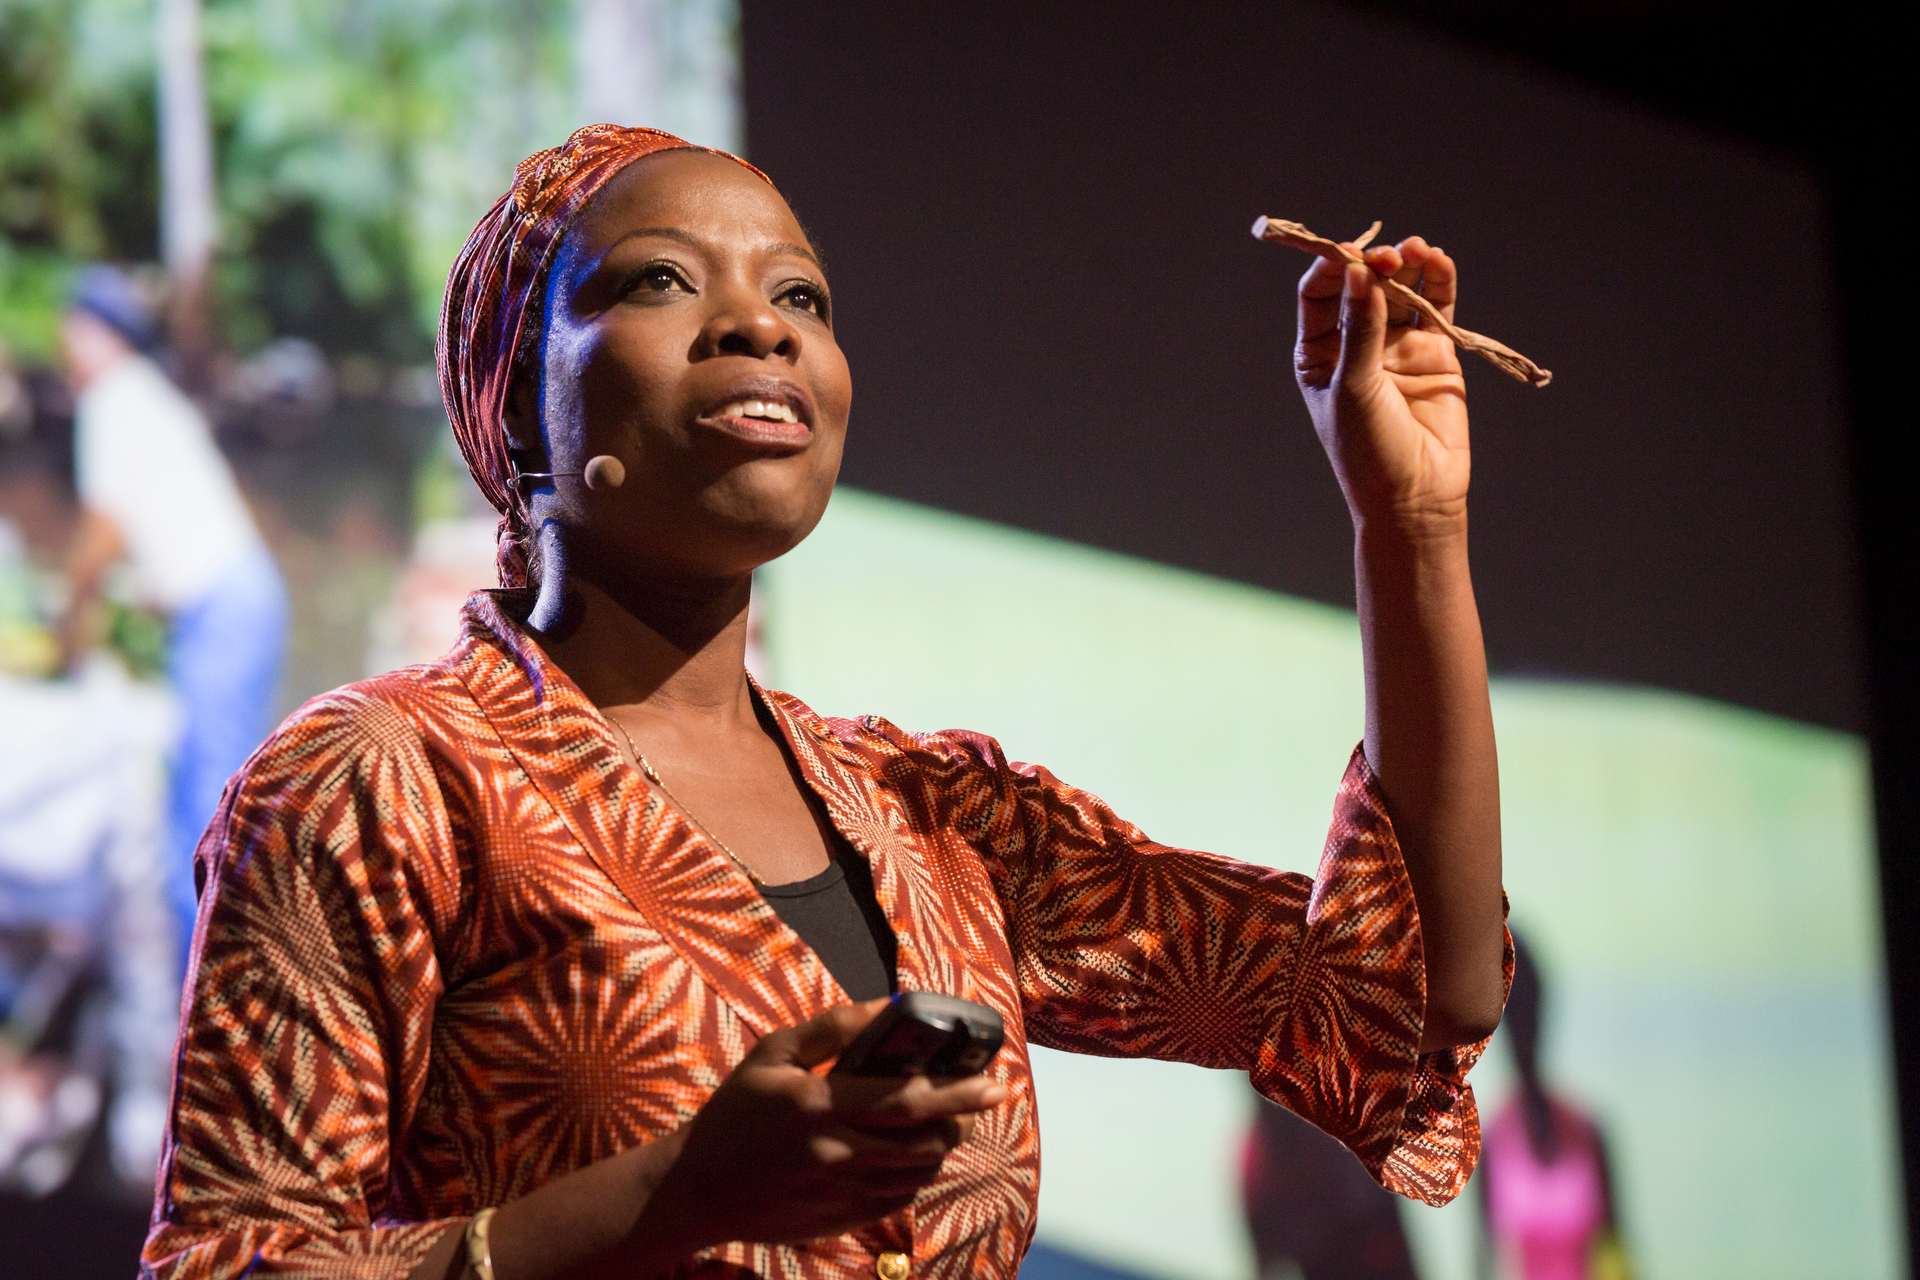 TEDWomen2015 - Momentum, May 27-29, 2015, Monterey Conference Center, Monterey, California, USA. Photo: Marla Aufmuth/TED